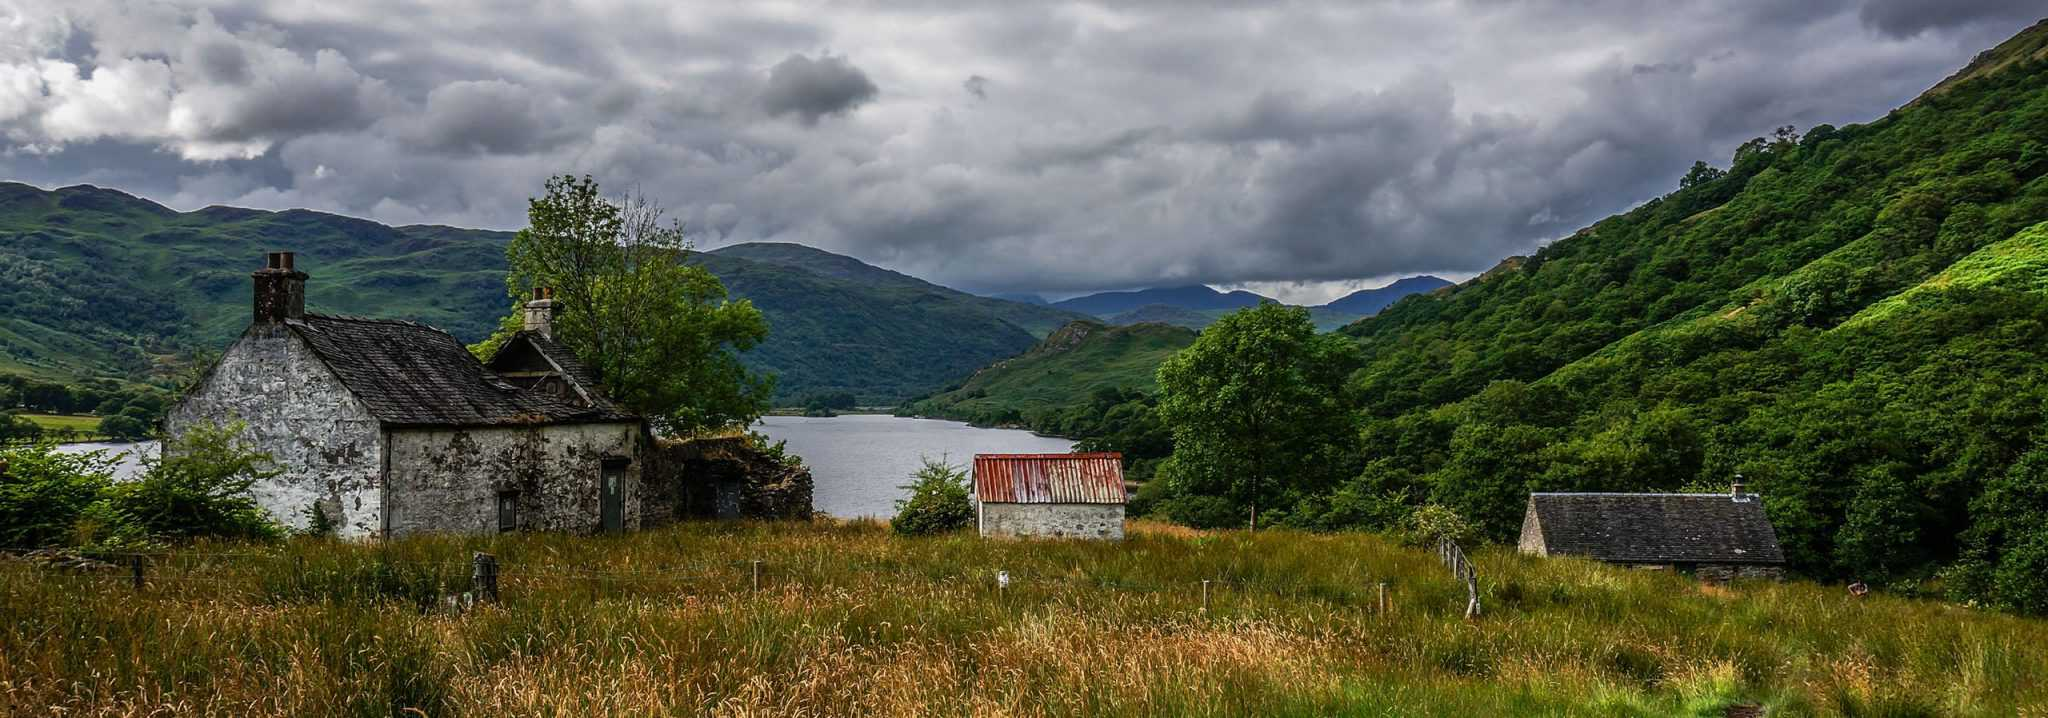 Guide to Camping on the West Highland Way - TMBtent